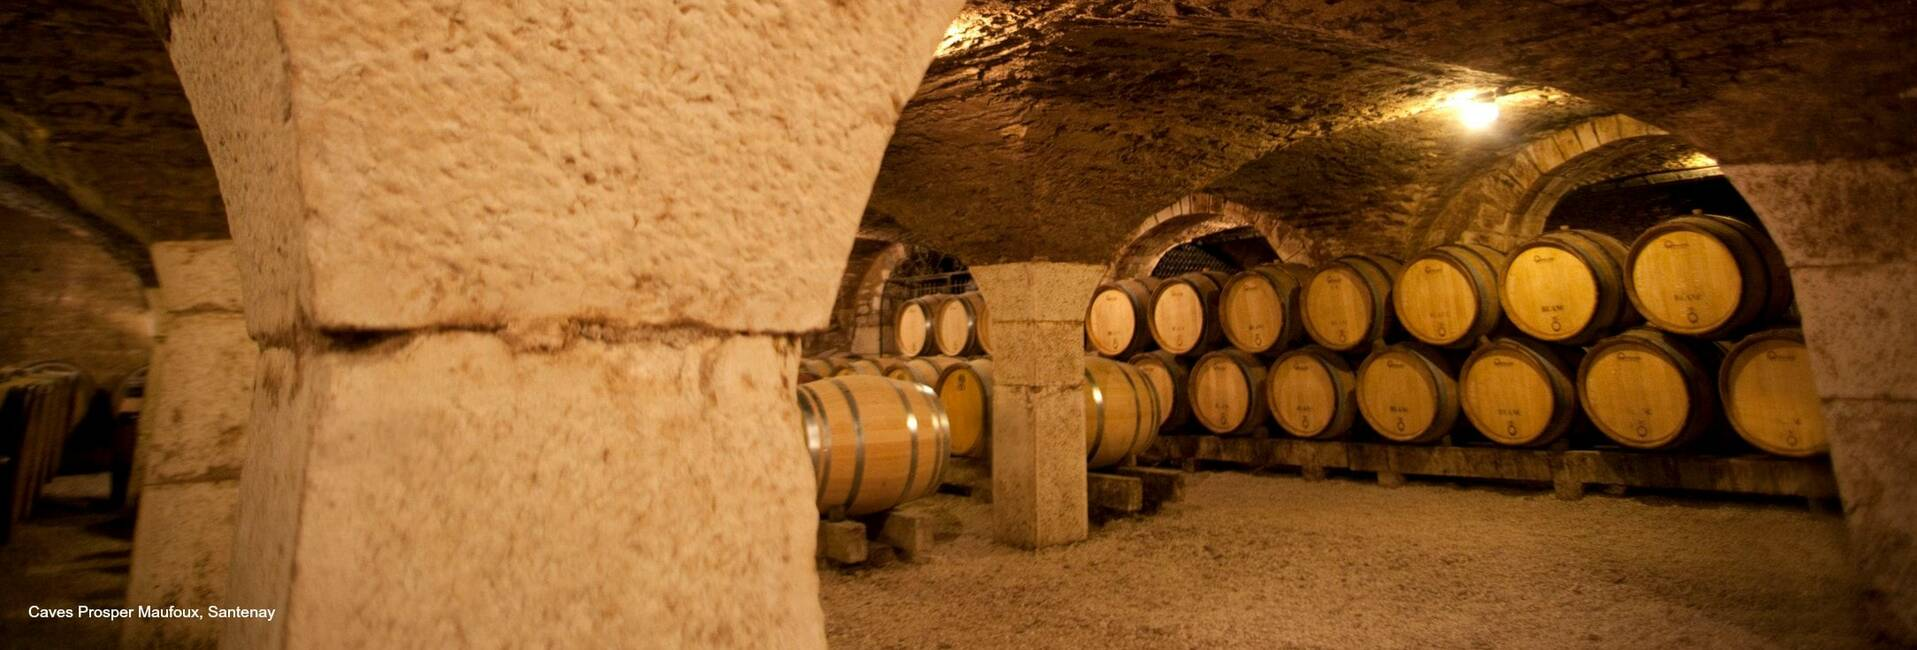 Cellar Tours in Beaune, Meursault, Santenay, Nolay, Chagny in Burgundy